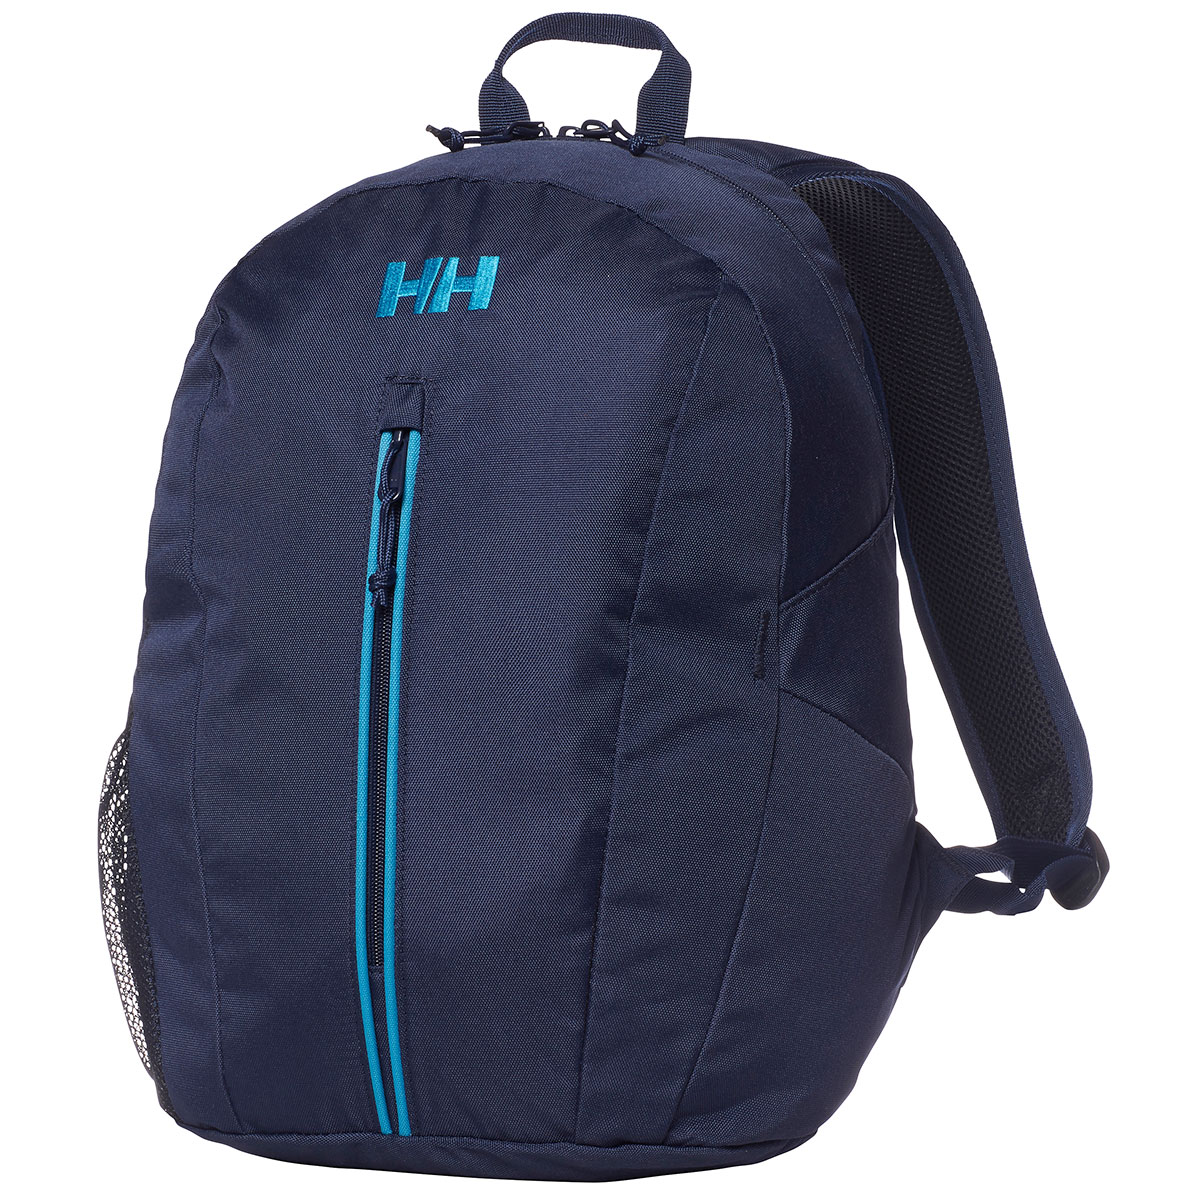 Helly-Hansen-2016-Aden-Backpack-2-0-20L-Rucksack-Travel-Outdoor-School-Bag